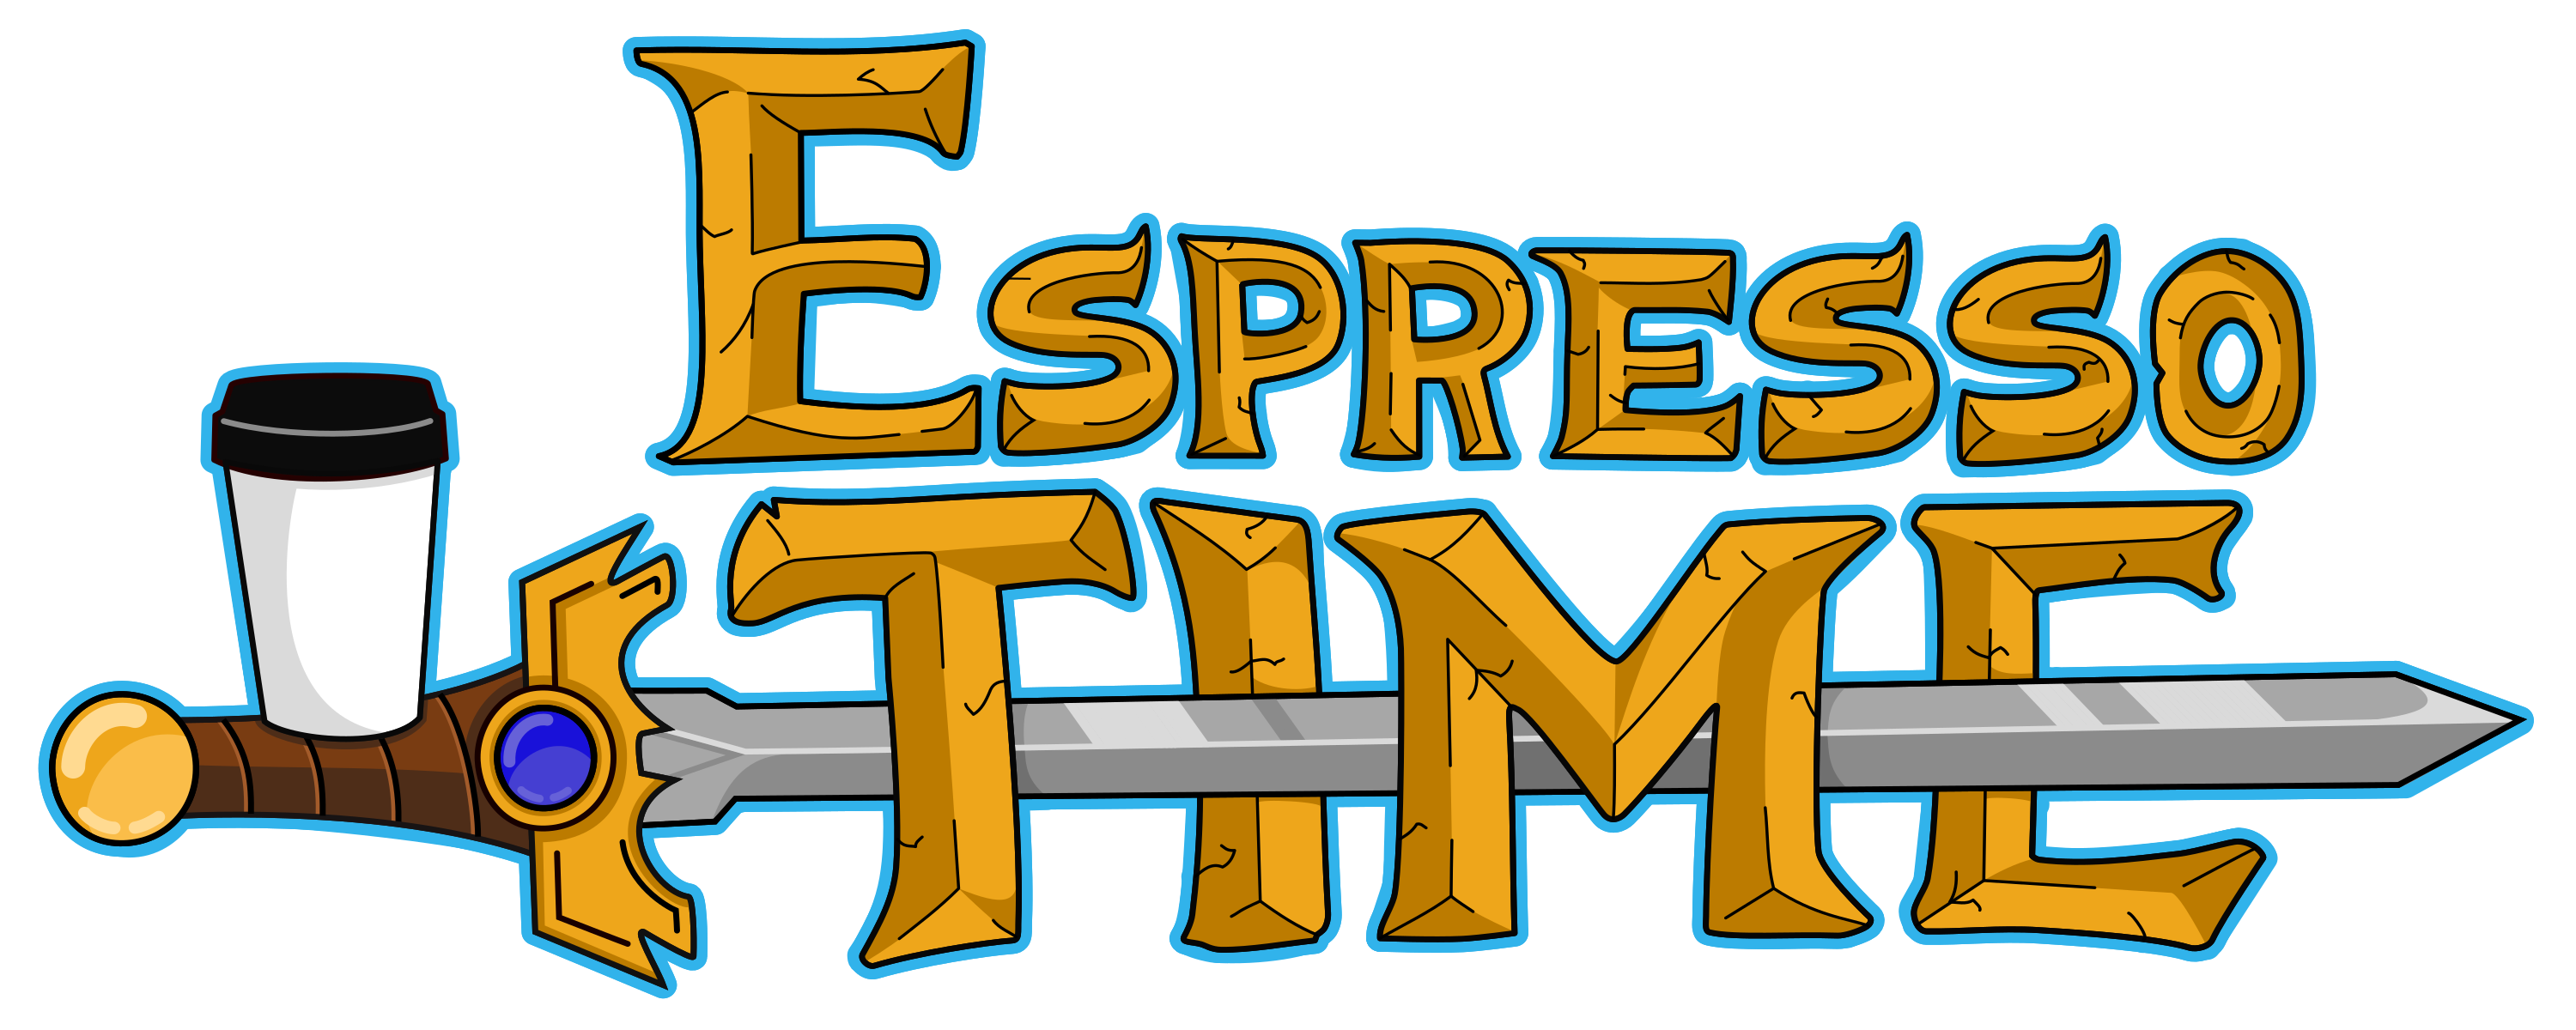 espressotime_sticker_02